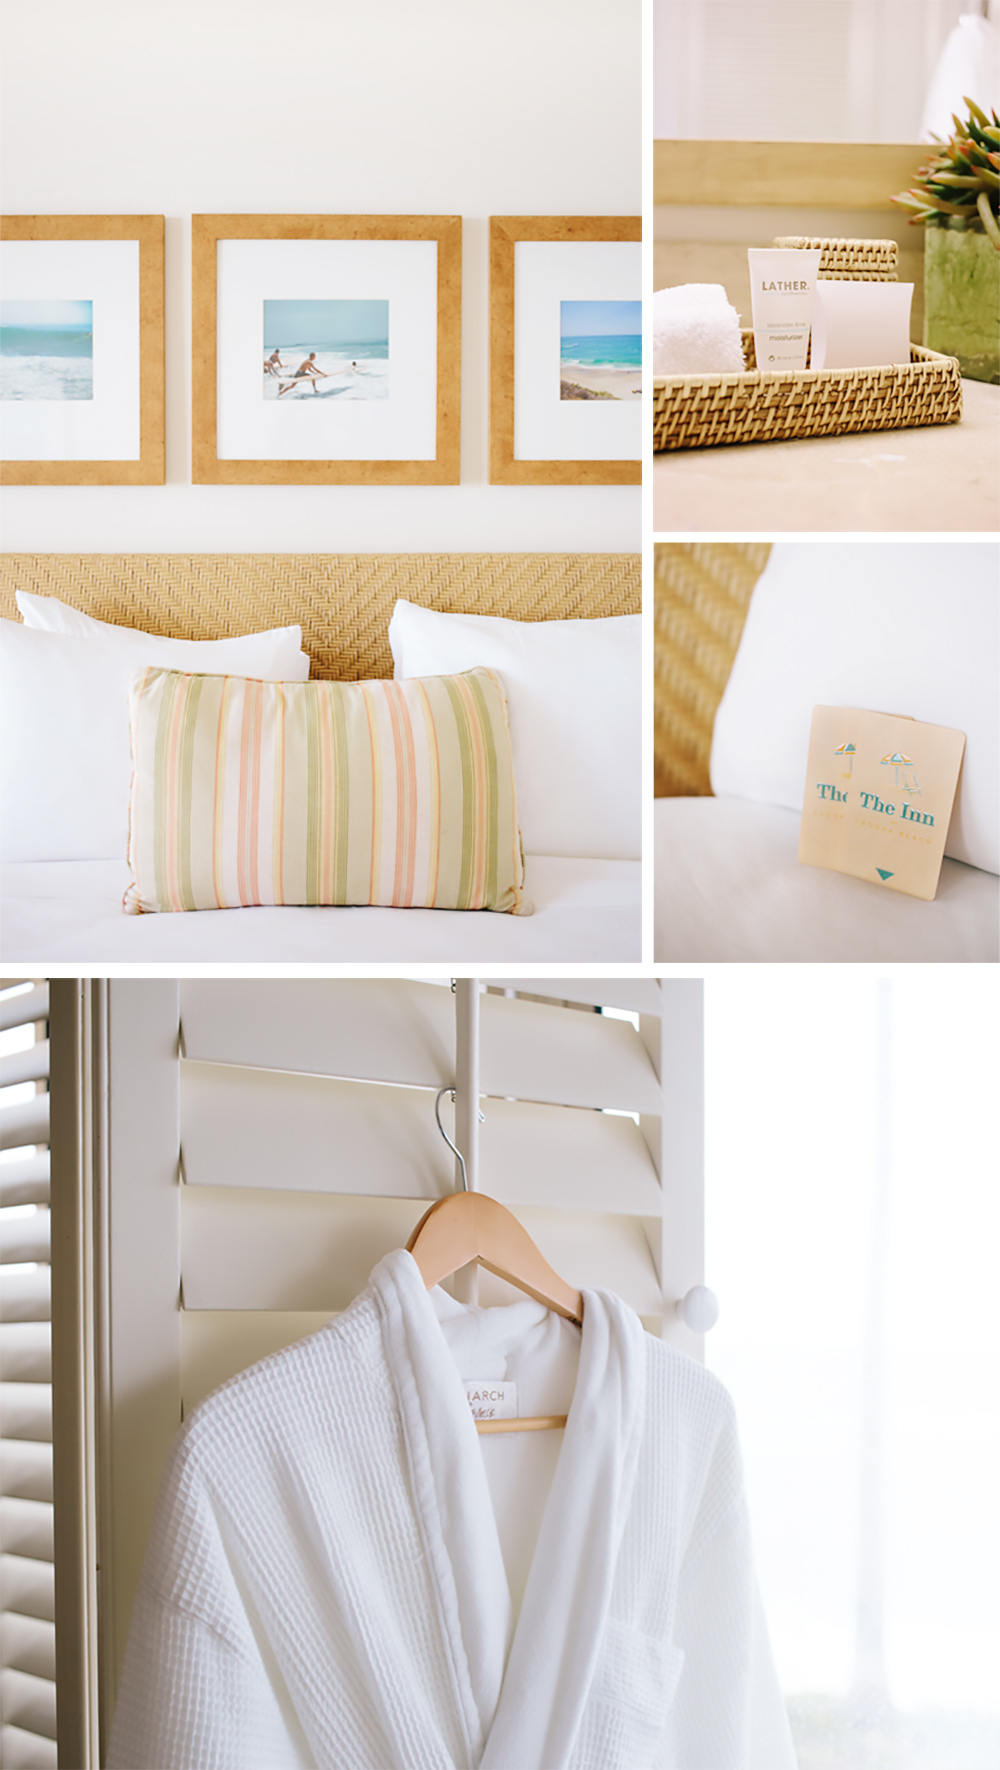 Beach-inspired rooms with eco-friendly products and plush cotton robes.